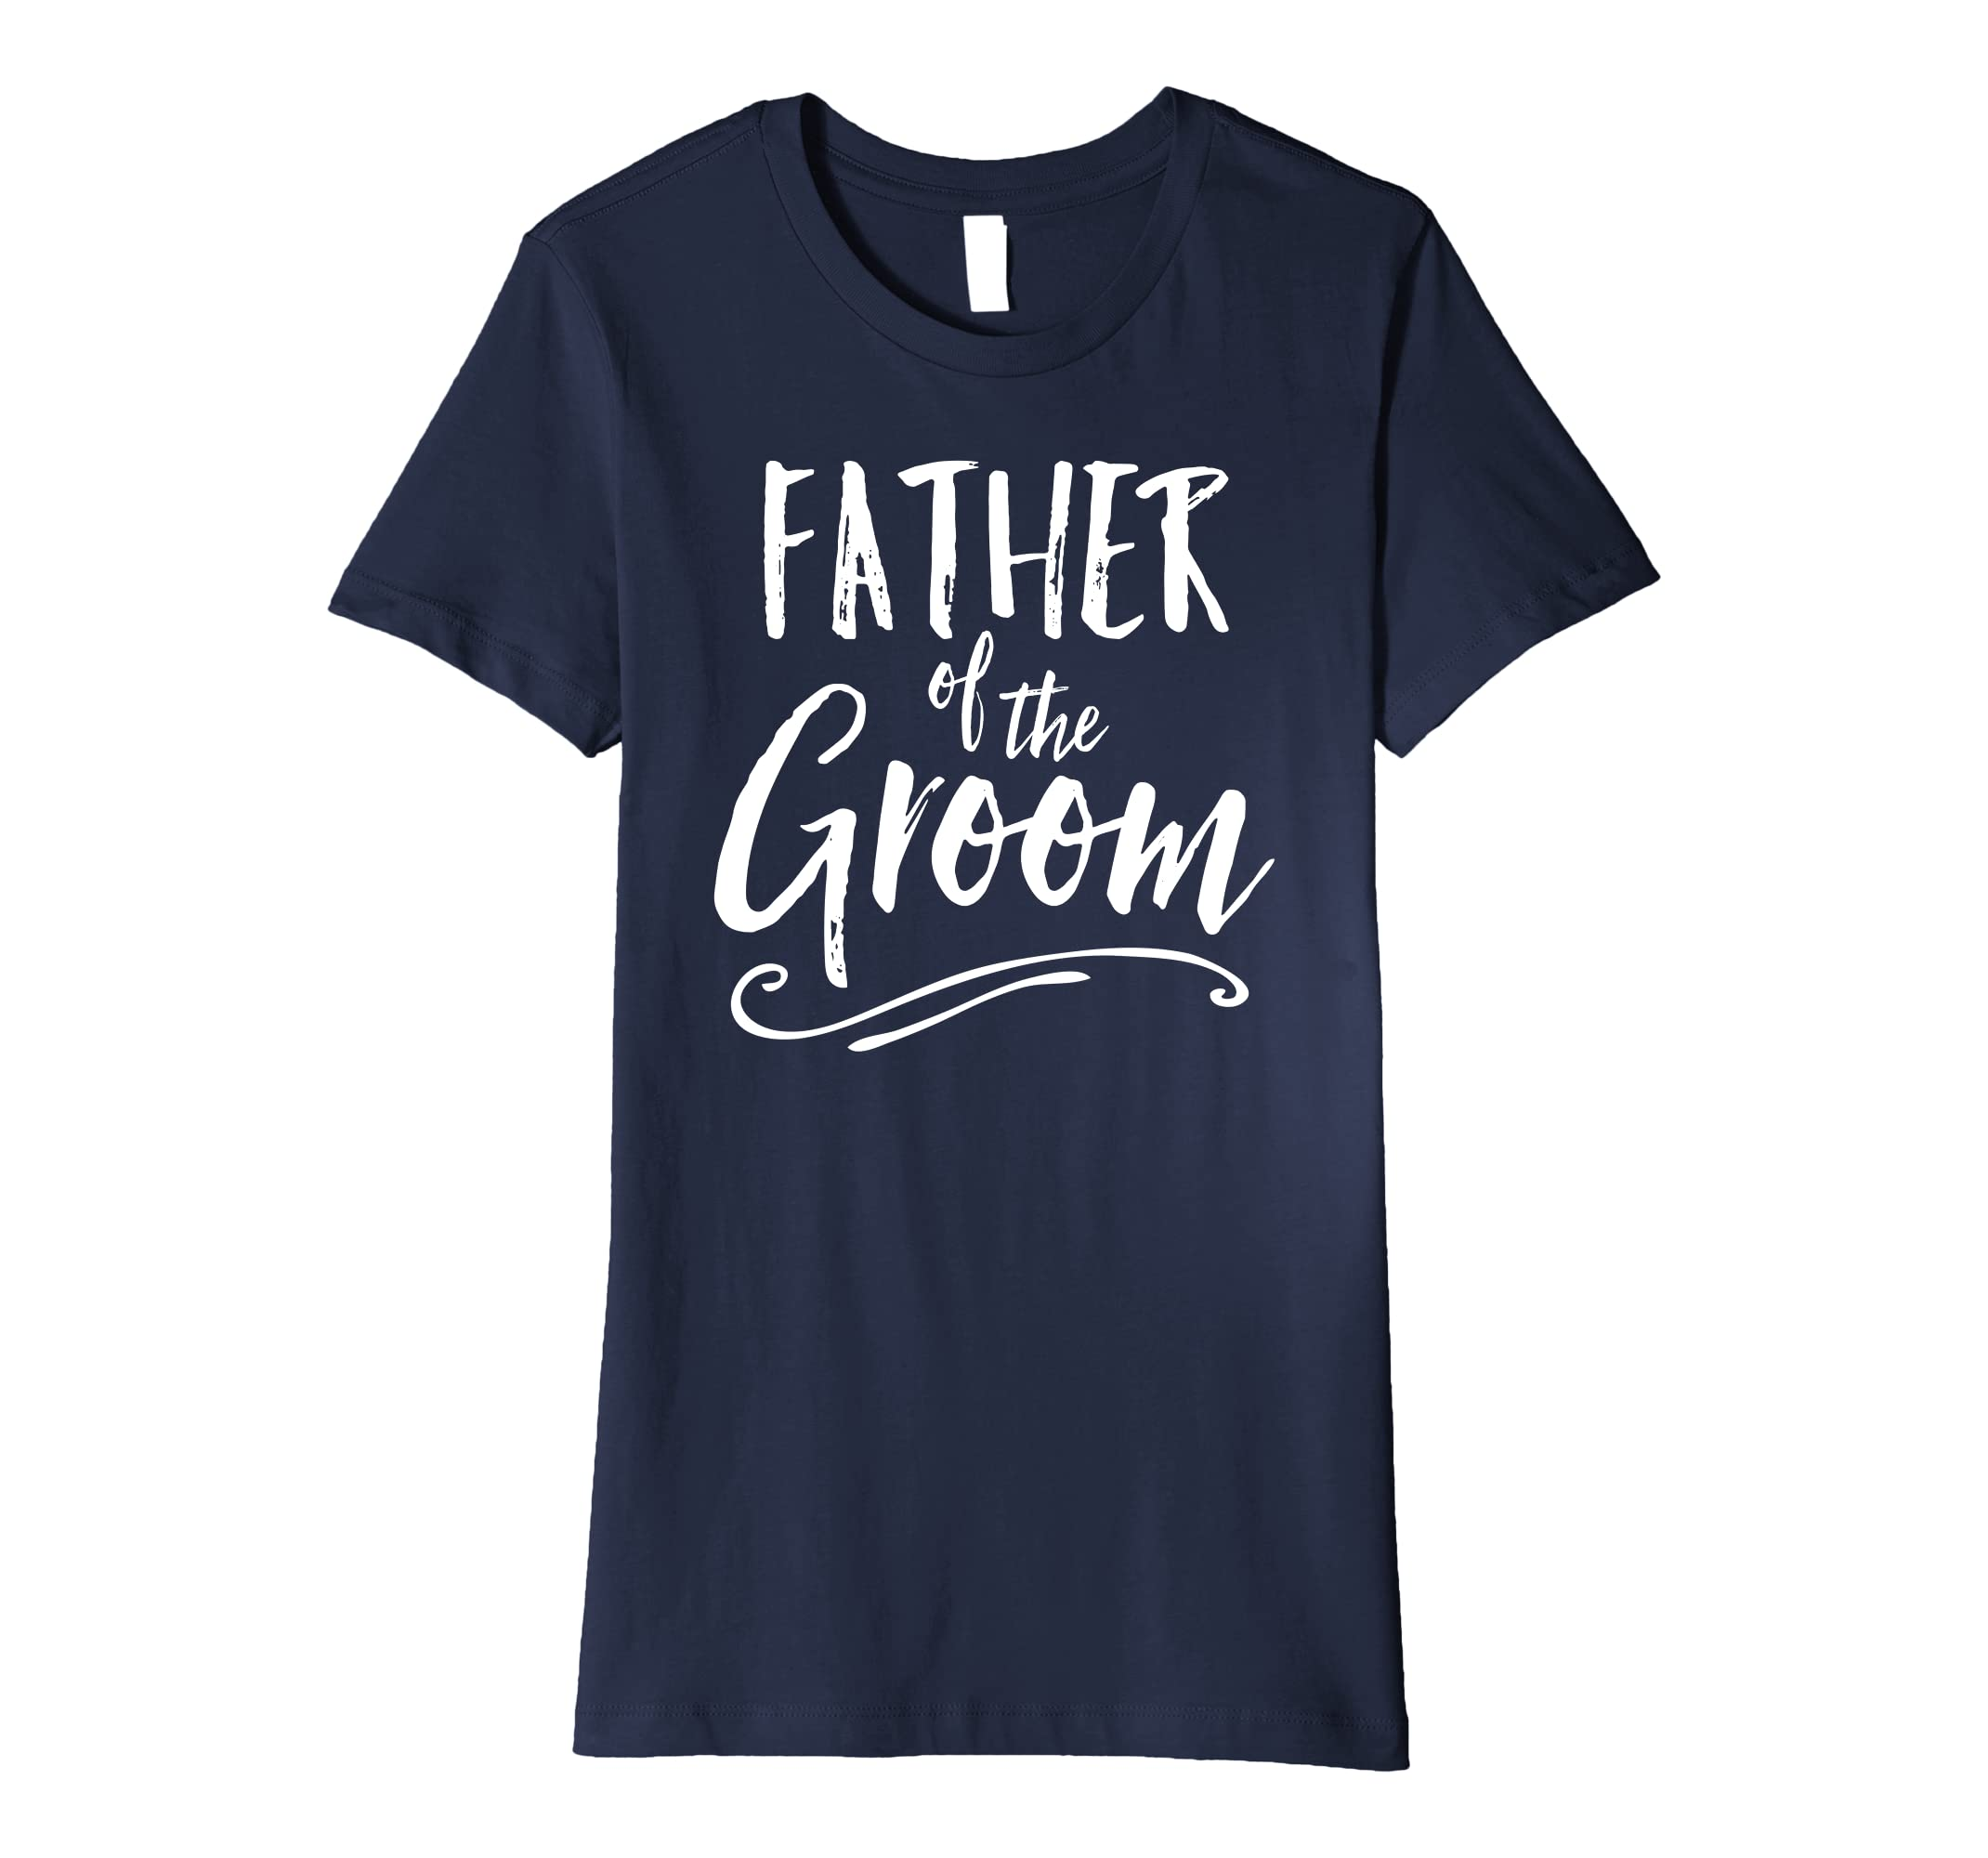 61c0beed09b25 Amazon.com: Father of the Groom Wedding Party Family Dad Parent ...